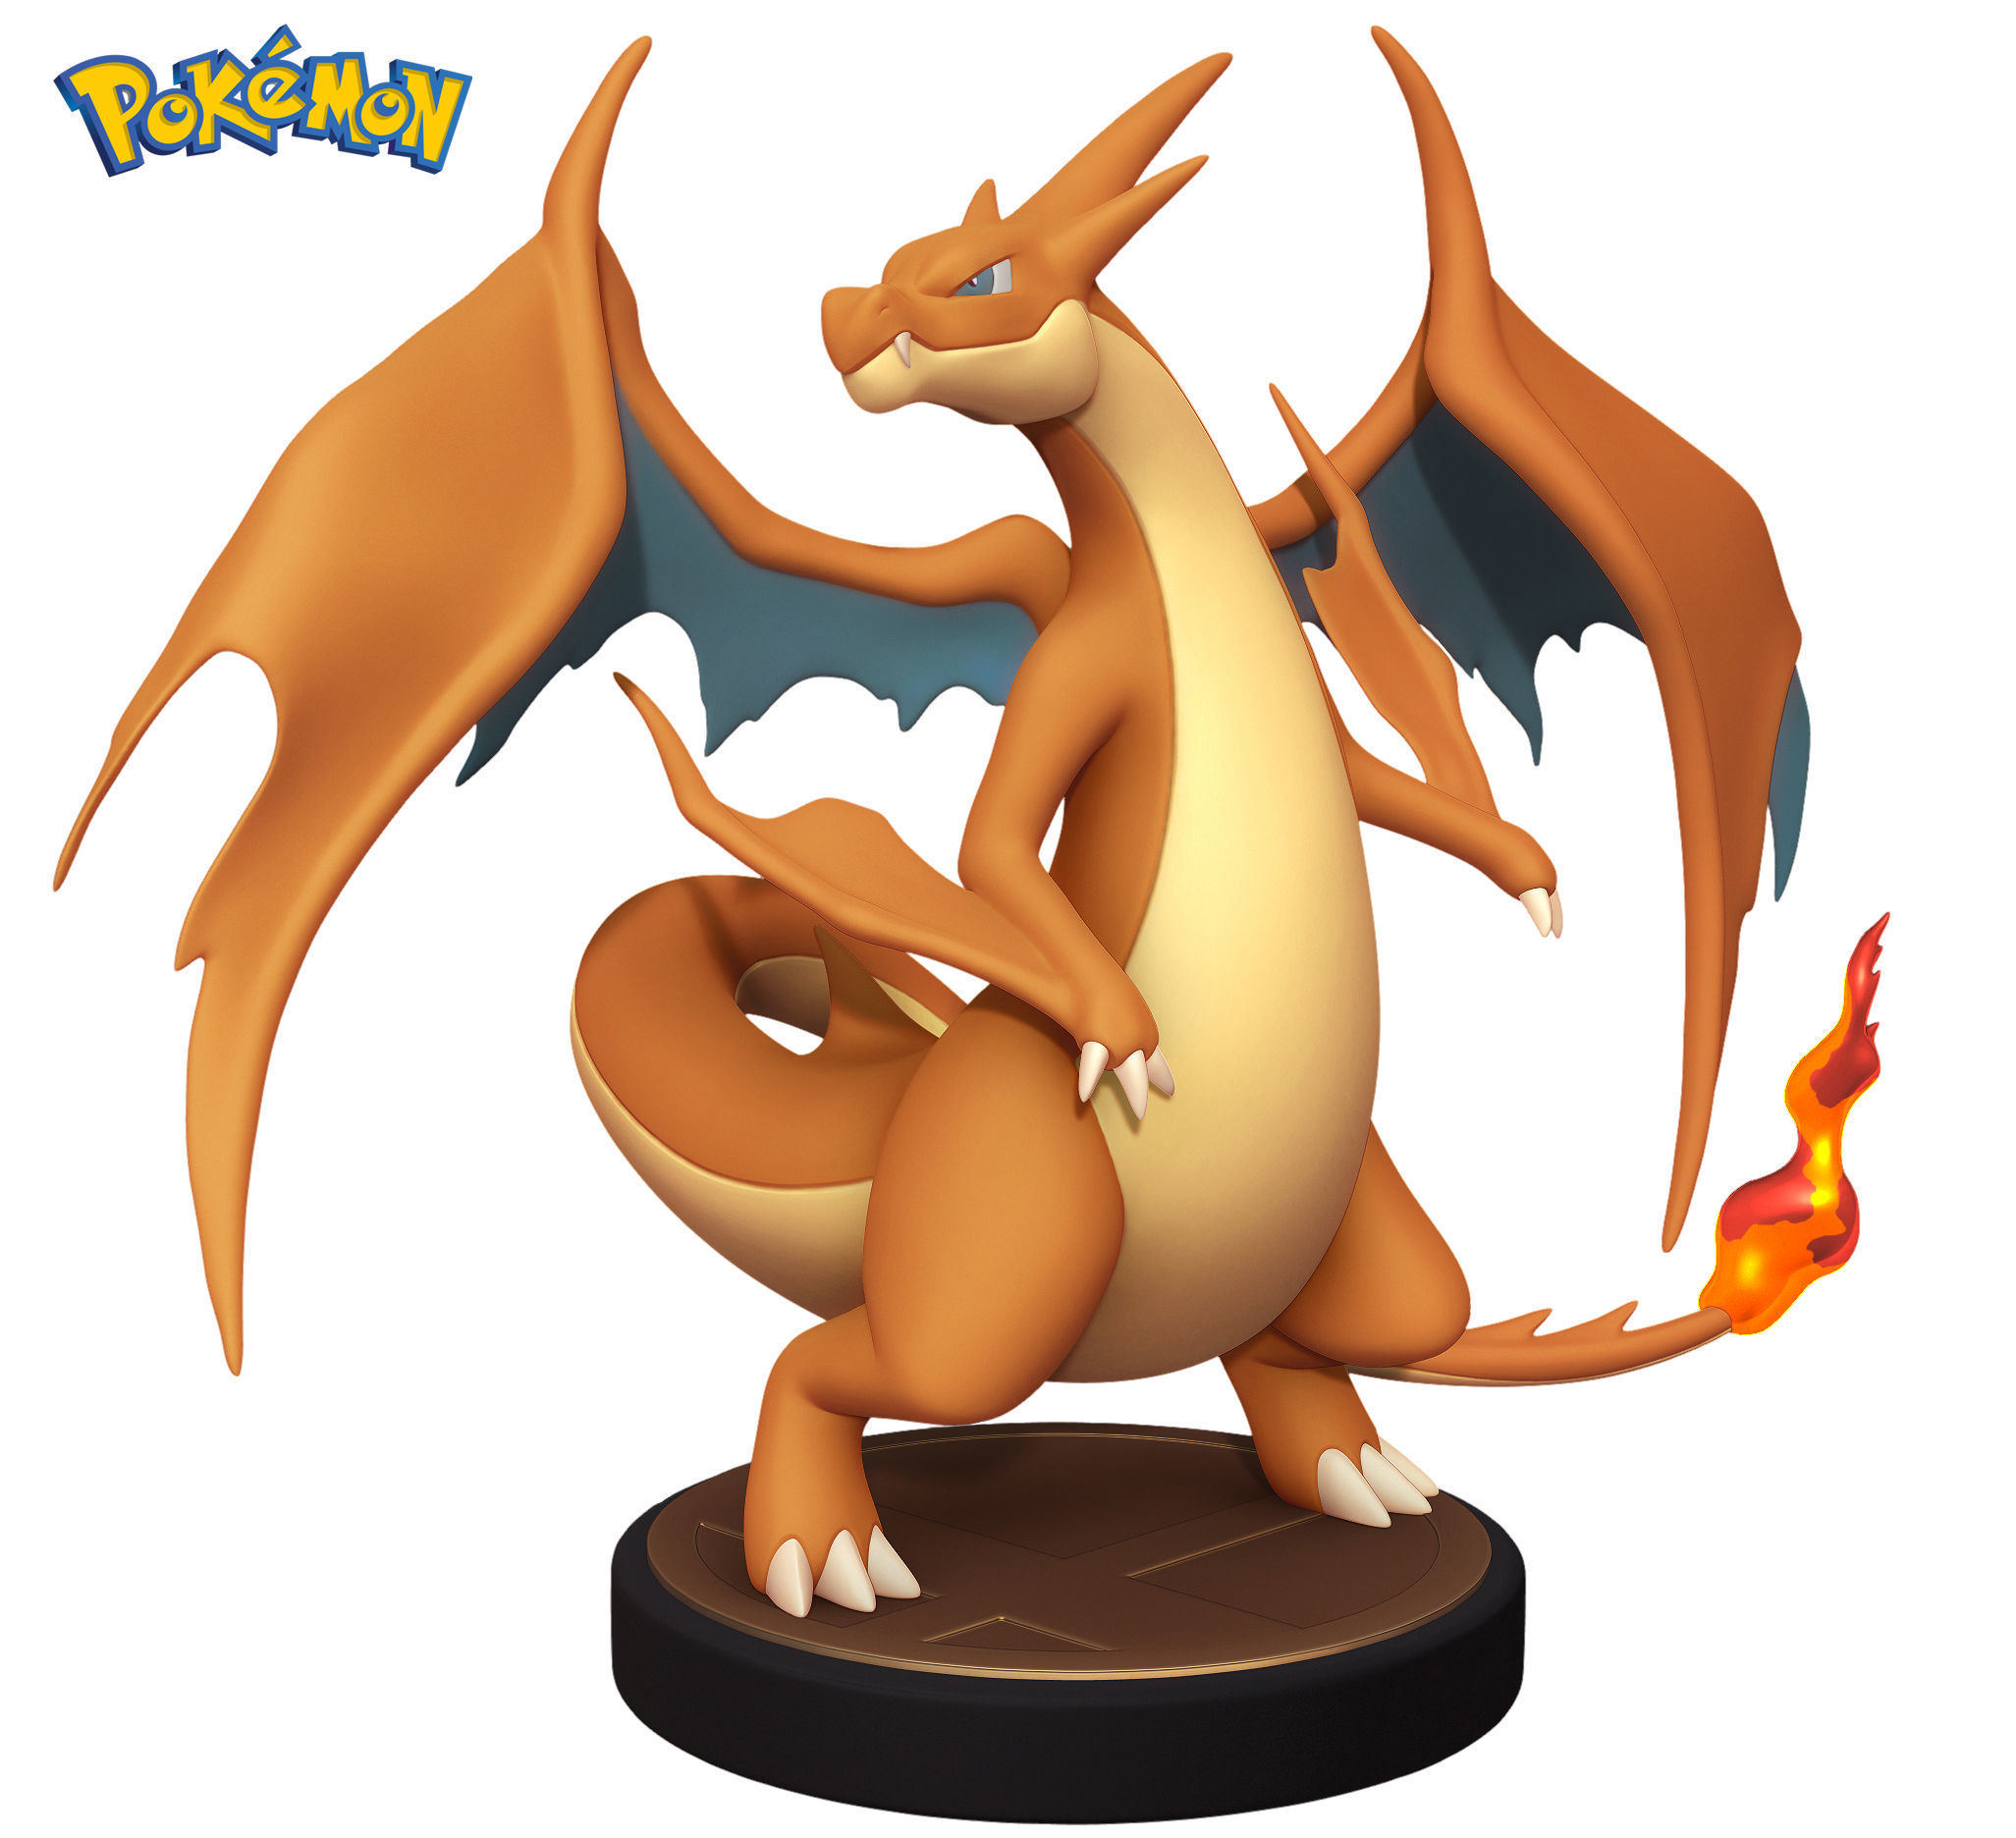 image relating to Pokemon Printable Images referred to as Pokemon Charizard Y - 3D Printable Determine - Toy 3D Print Style